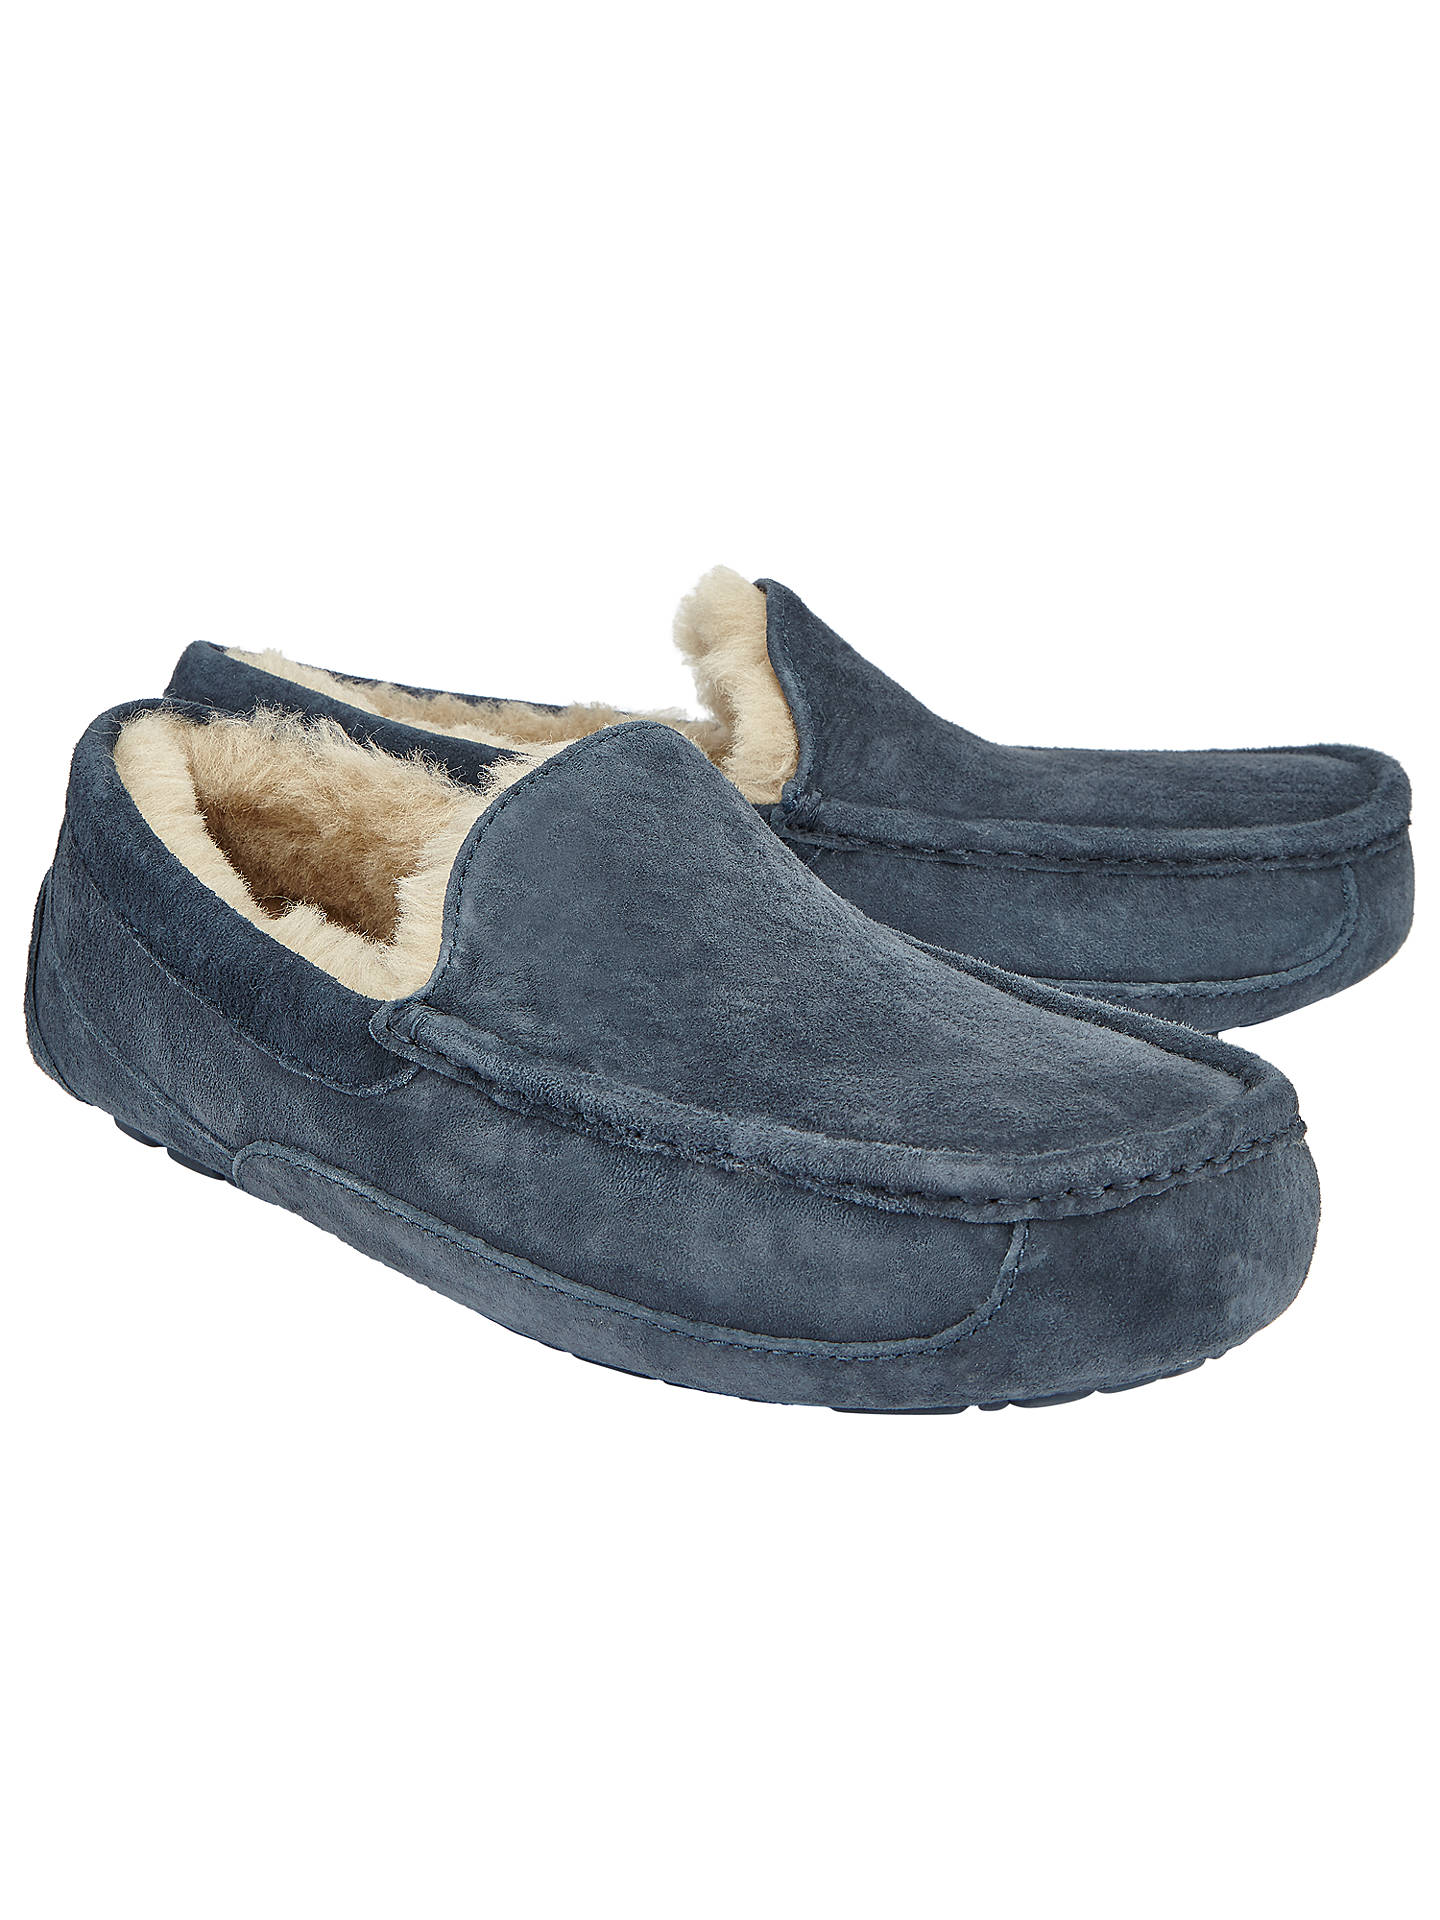 1efb27cc752 UGG Ascot Moccasin Suede Slippers, Navy at John Lewis & Partners